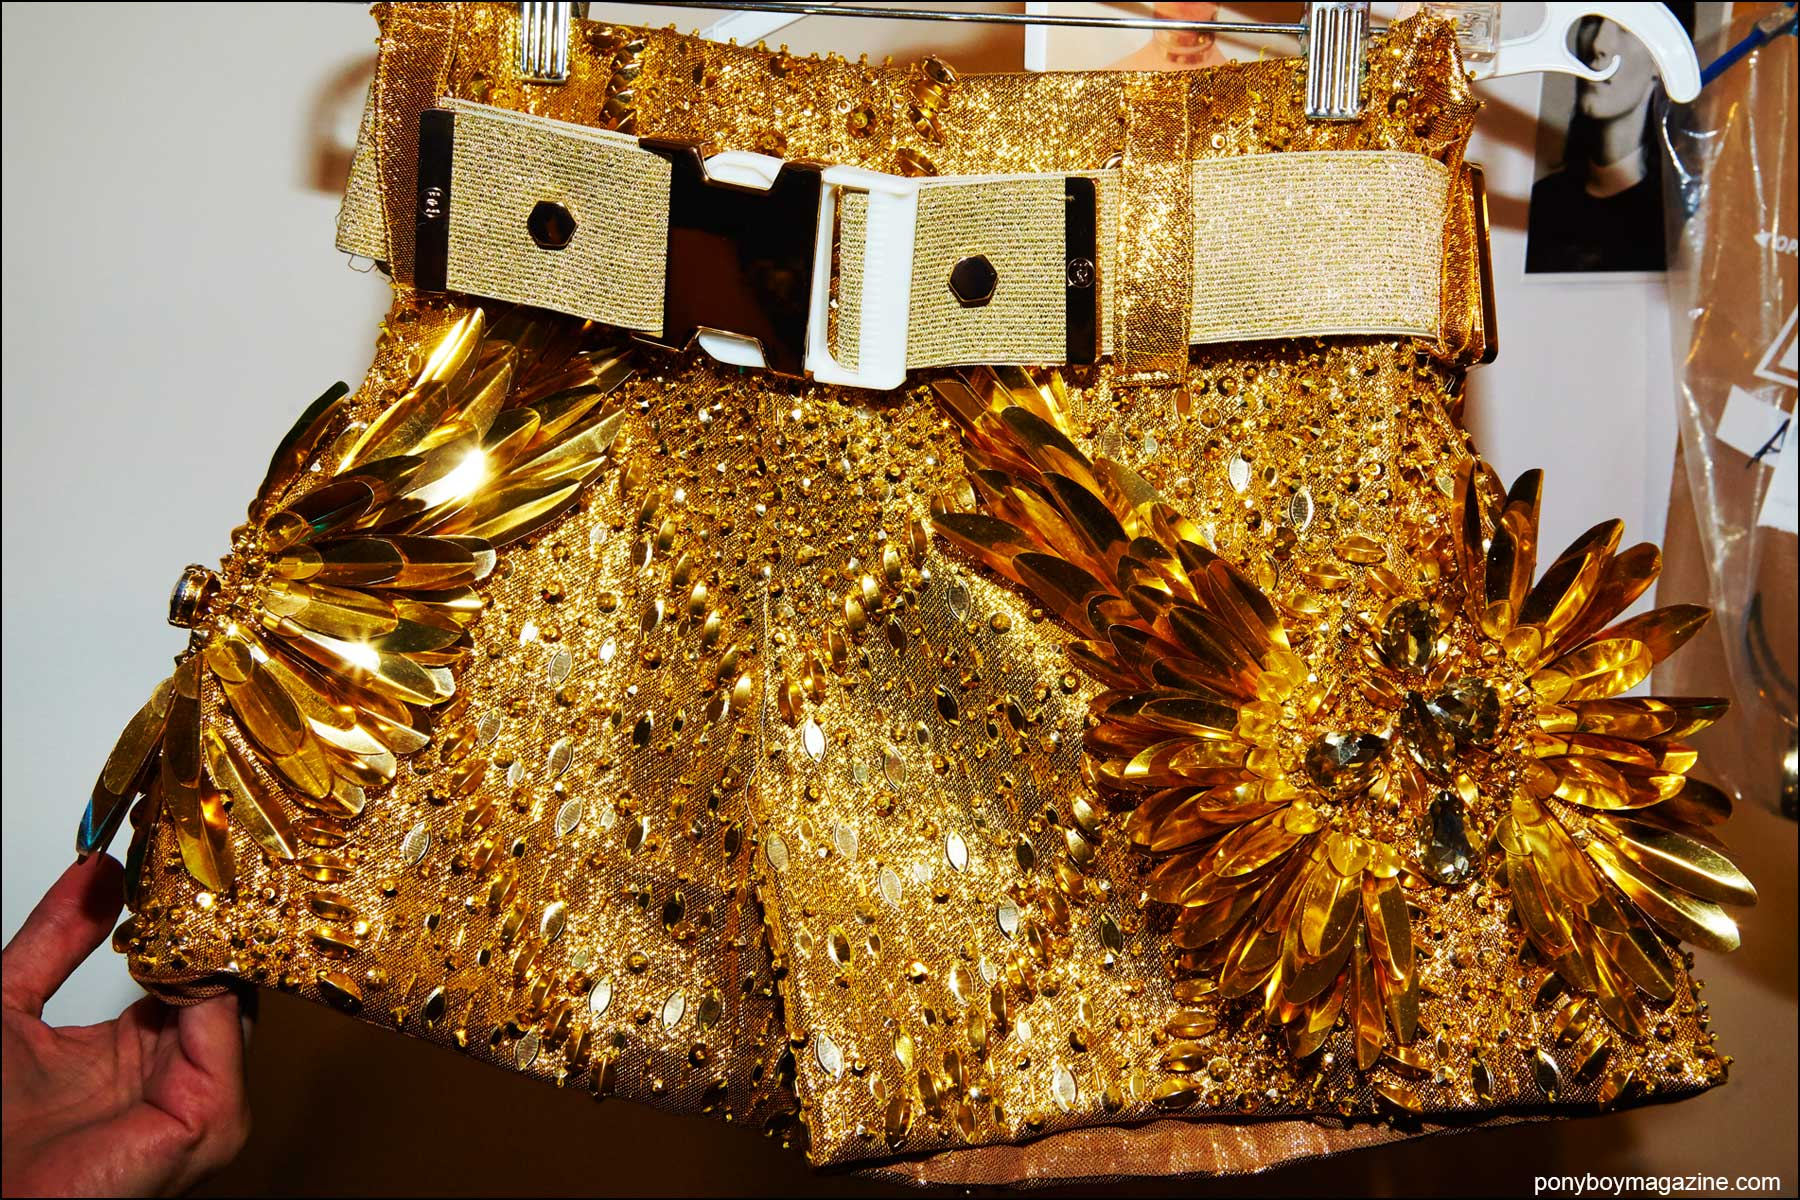 Detail shot of a gold hot pant from the Blonds S/S16 show, photographed by Alexander Thompson for Ponyboy magazine NY.